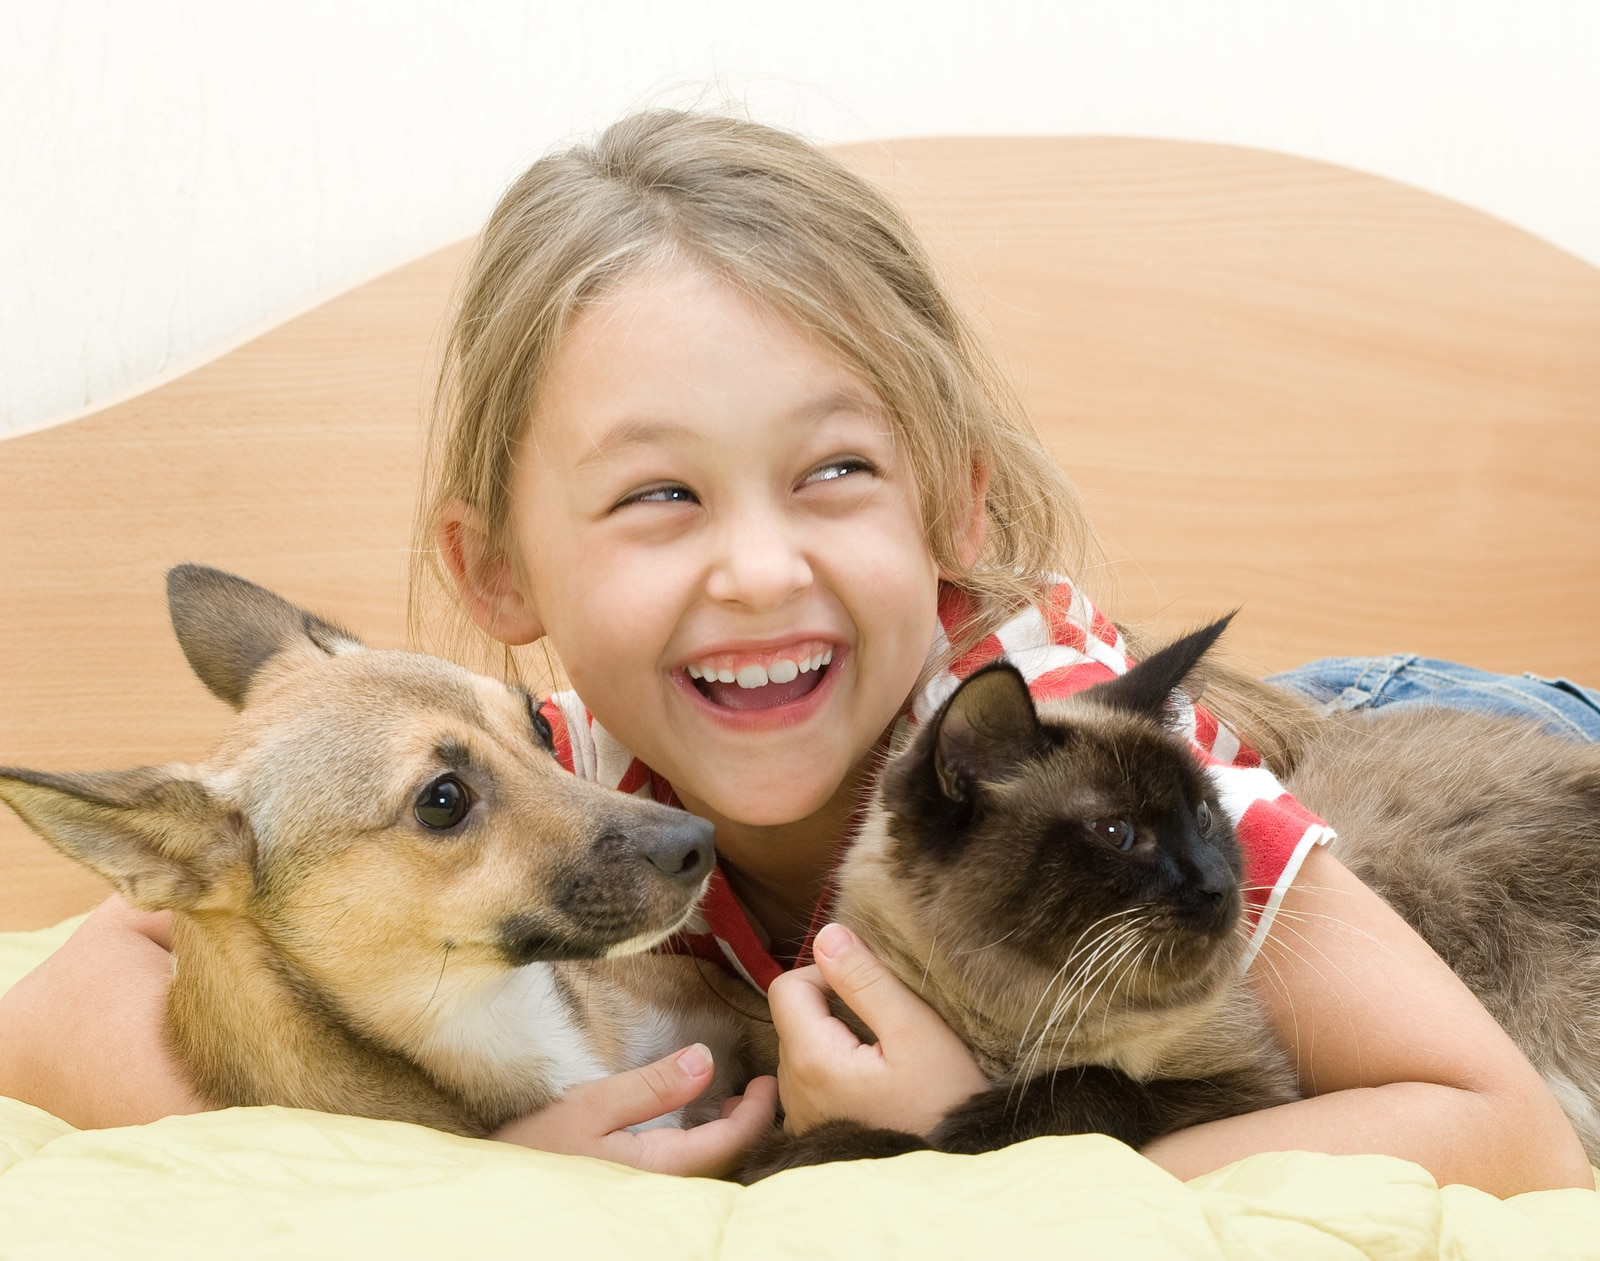 little girl with a dog and a cat on a bed of yellow color